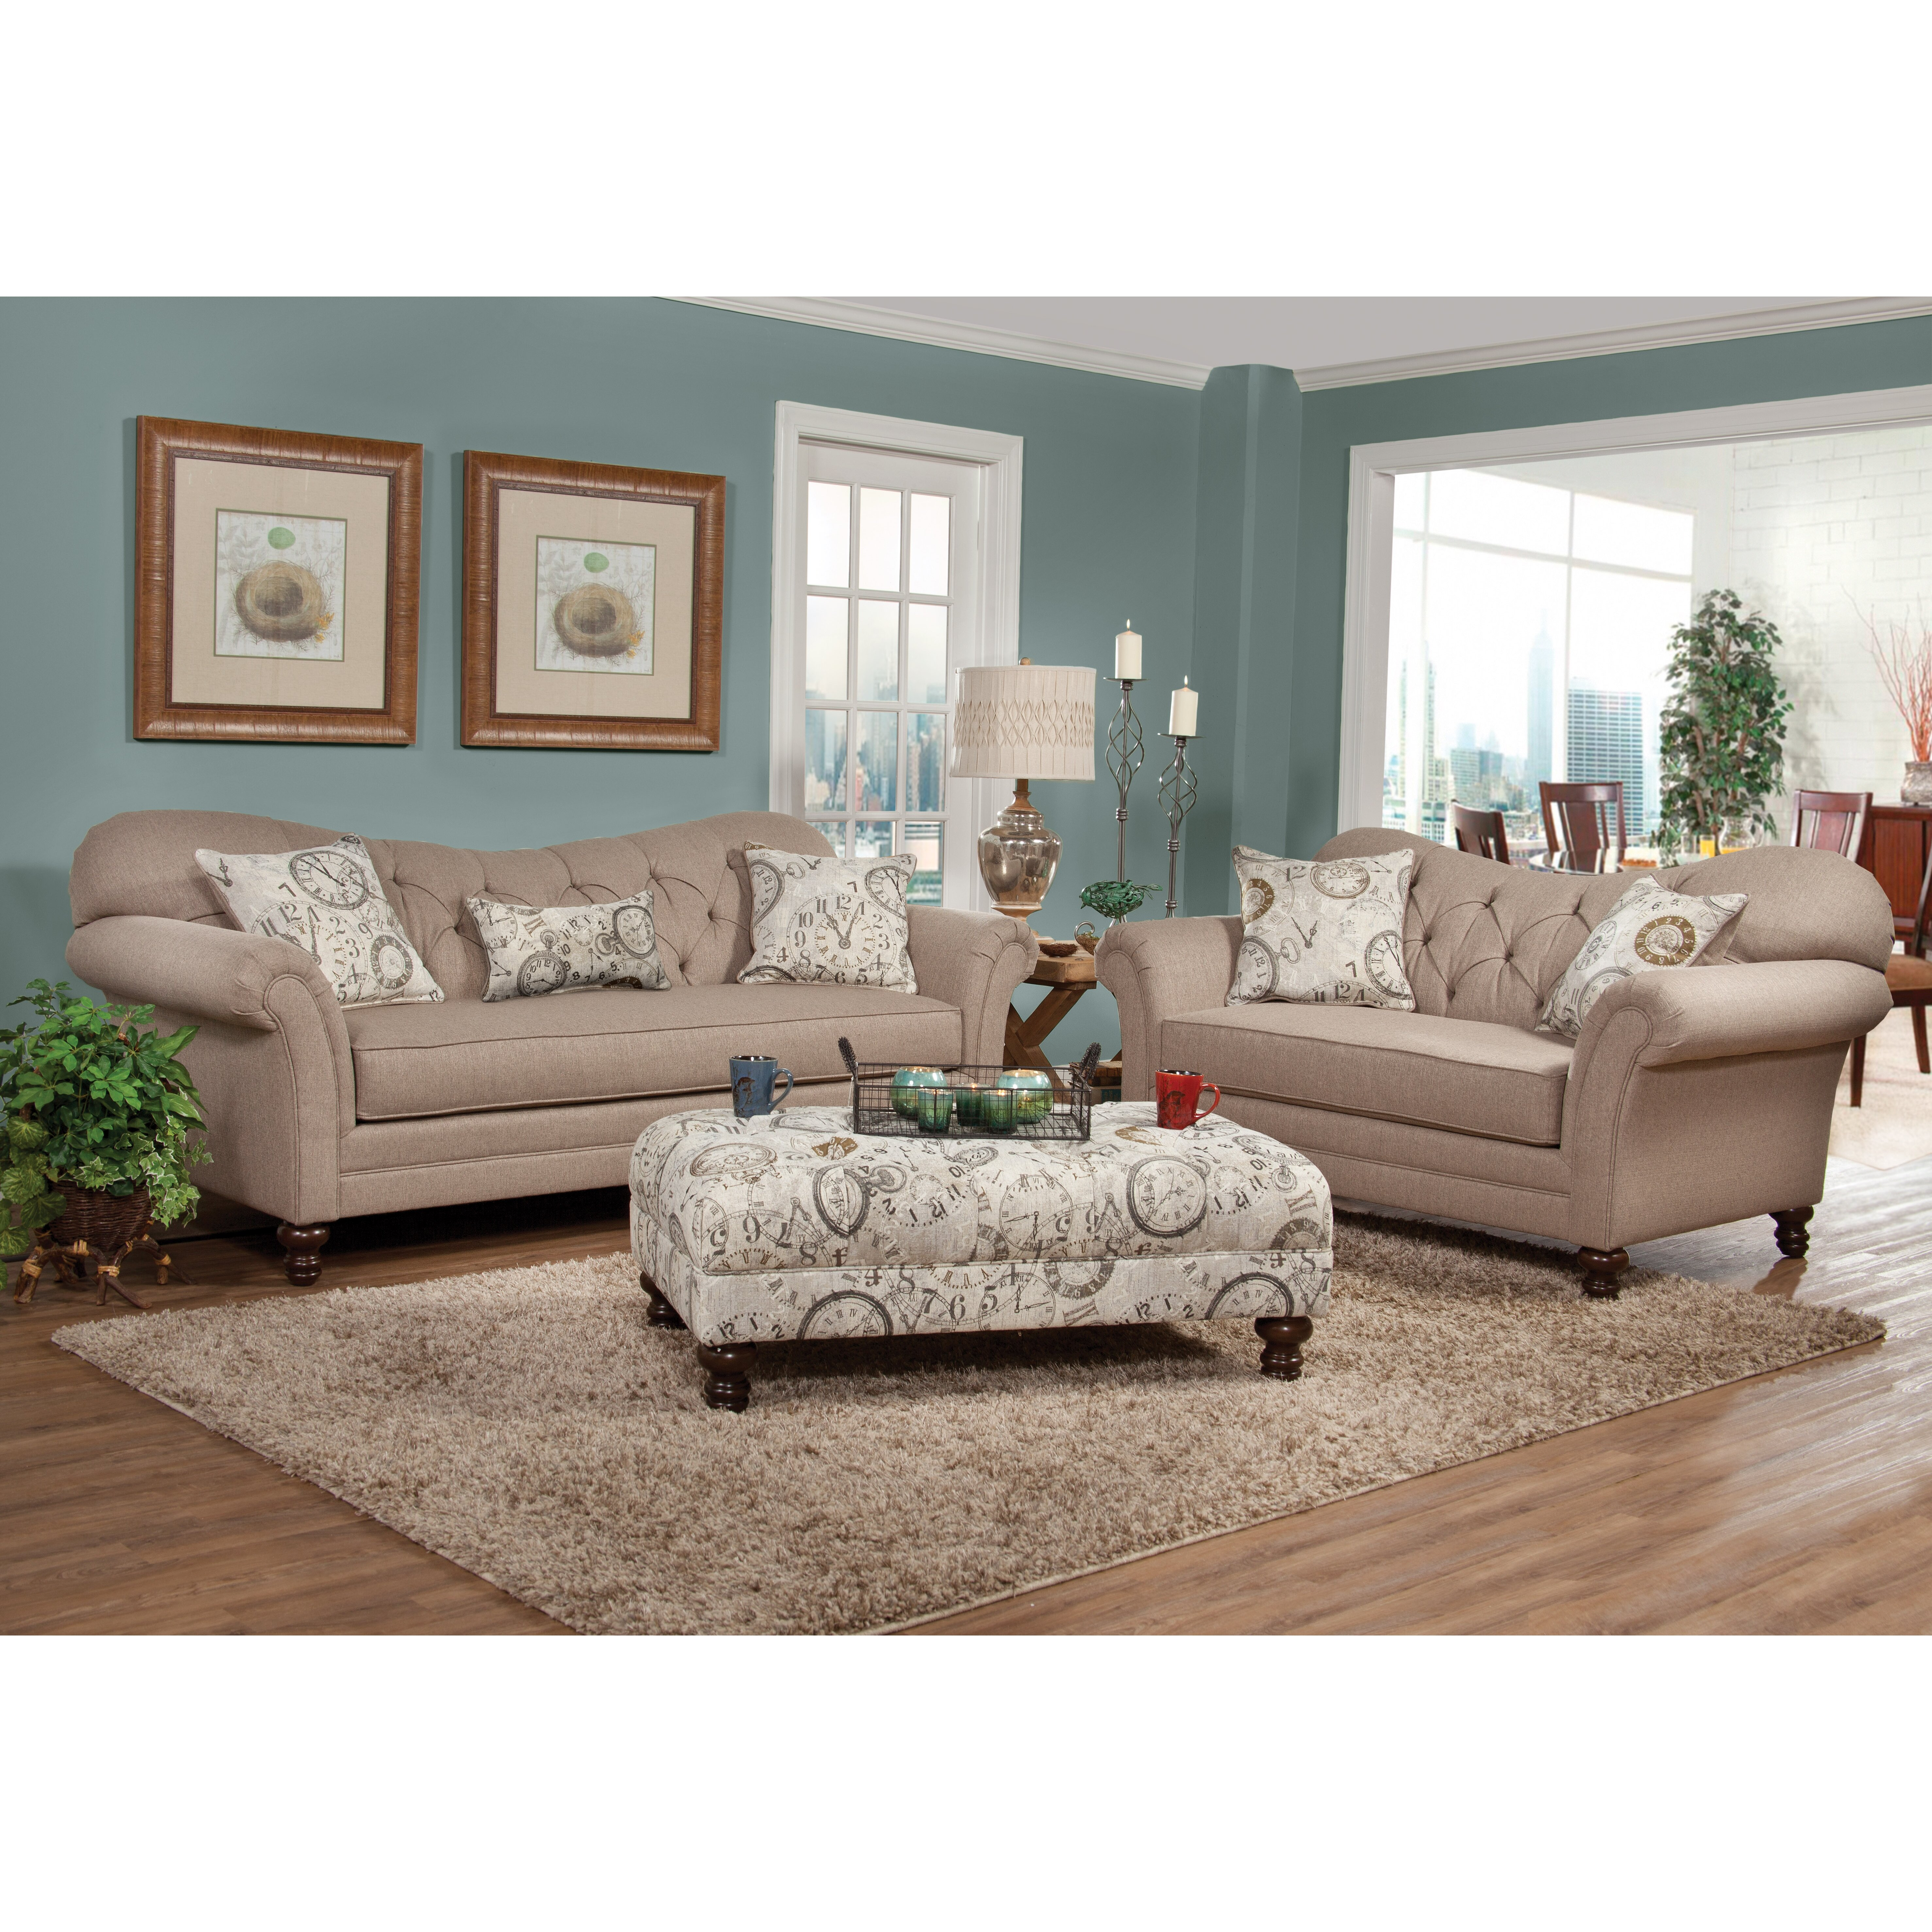 Three Posts Serta Upholstery Wheatfield Living Room Collection Reviews Wayfair Supply